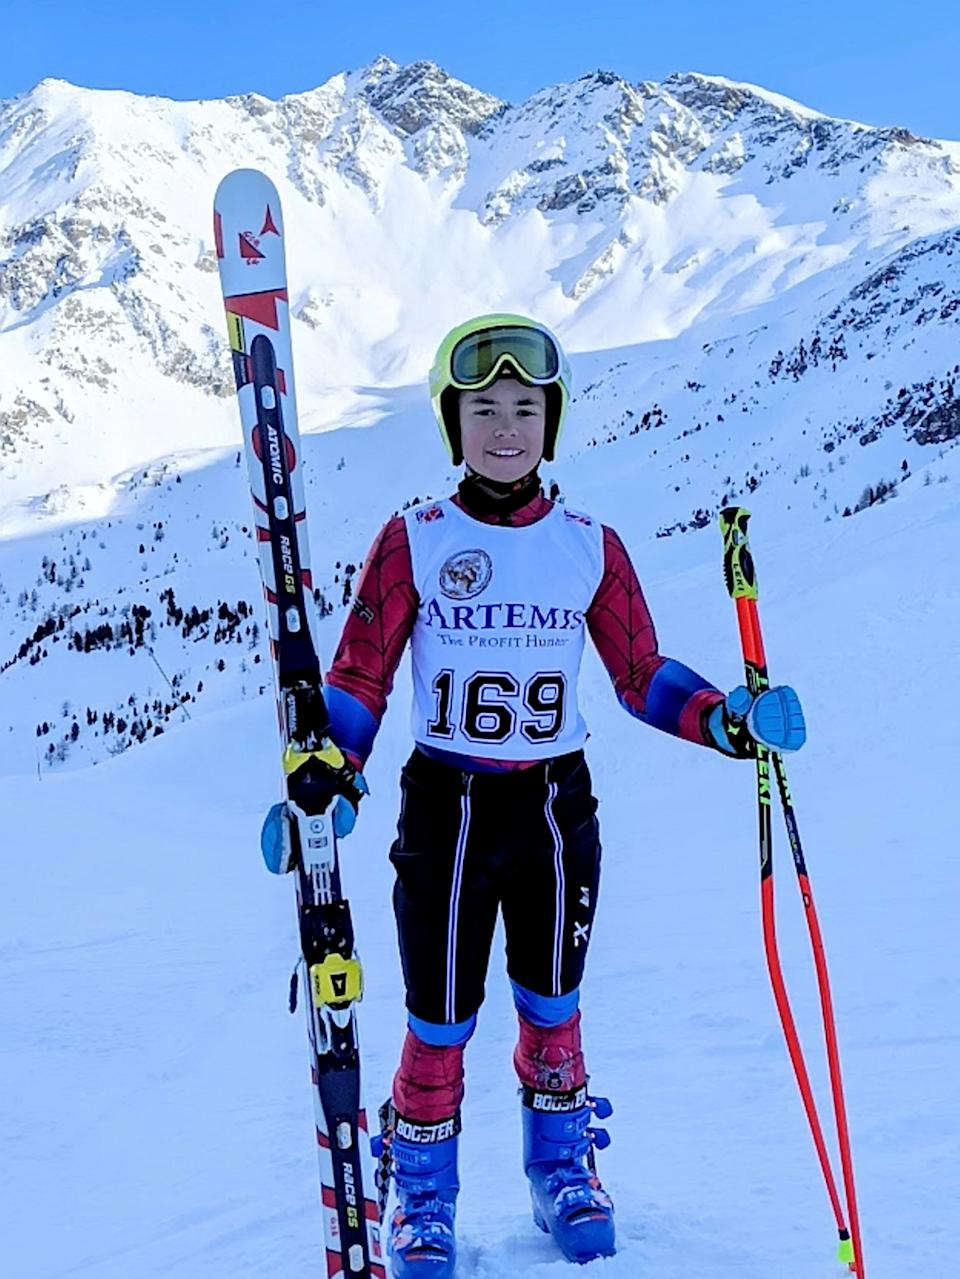 George Brown is dreaming of becoming the best ski jumper. (SWNS)